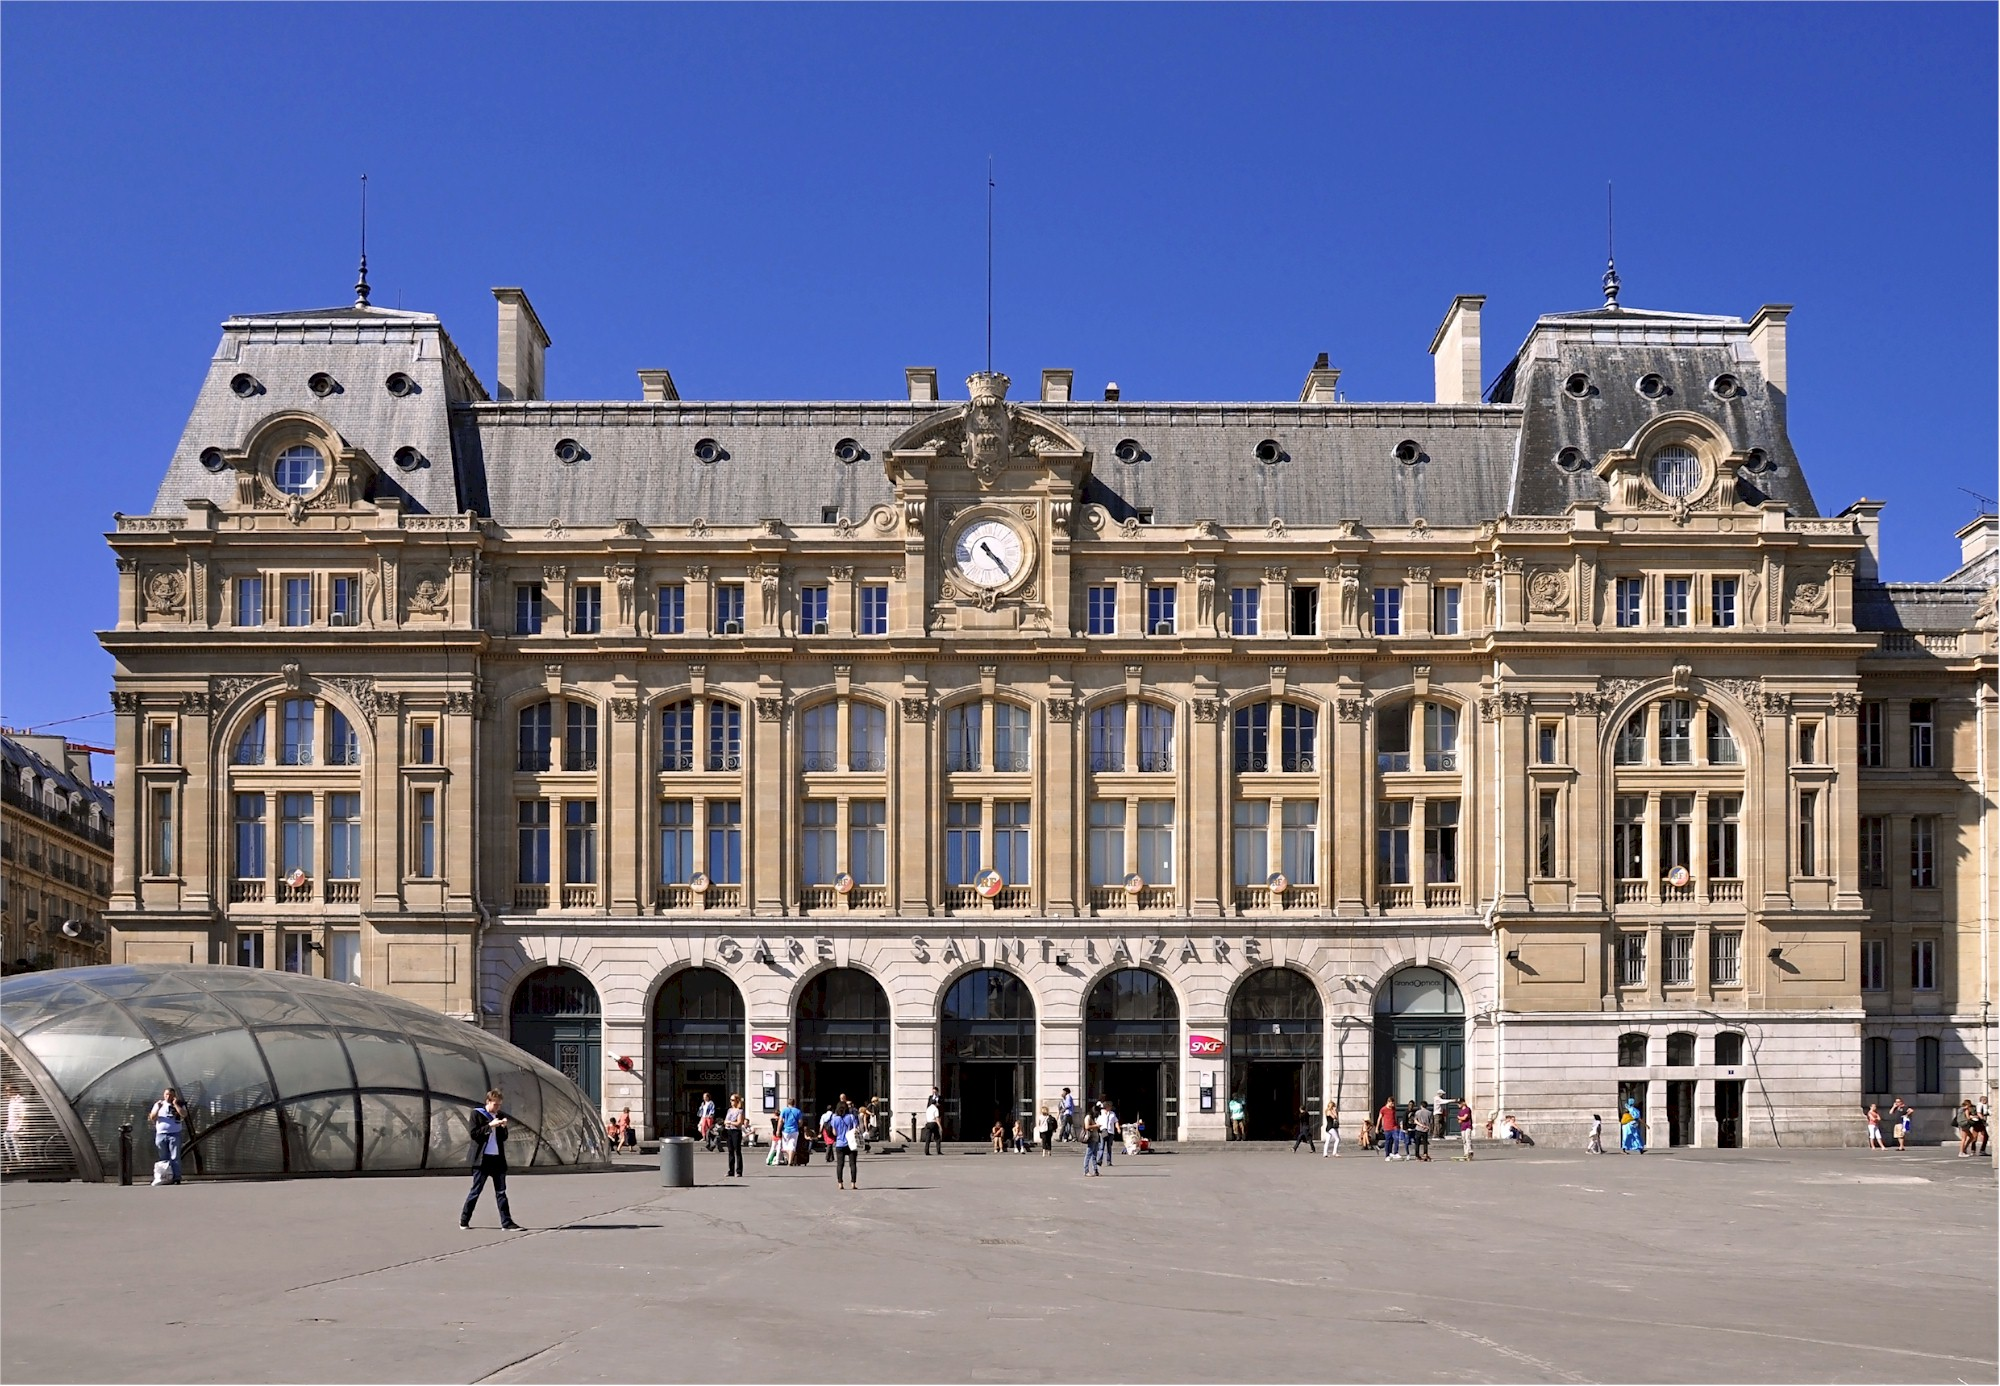 Paris-Gare-de-Saint-Lazare-train-station